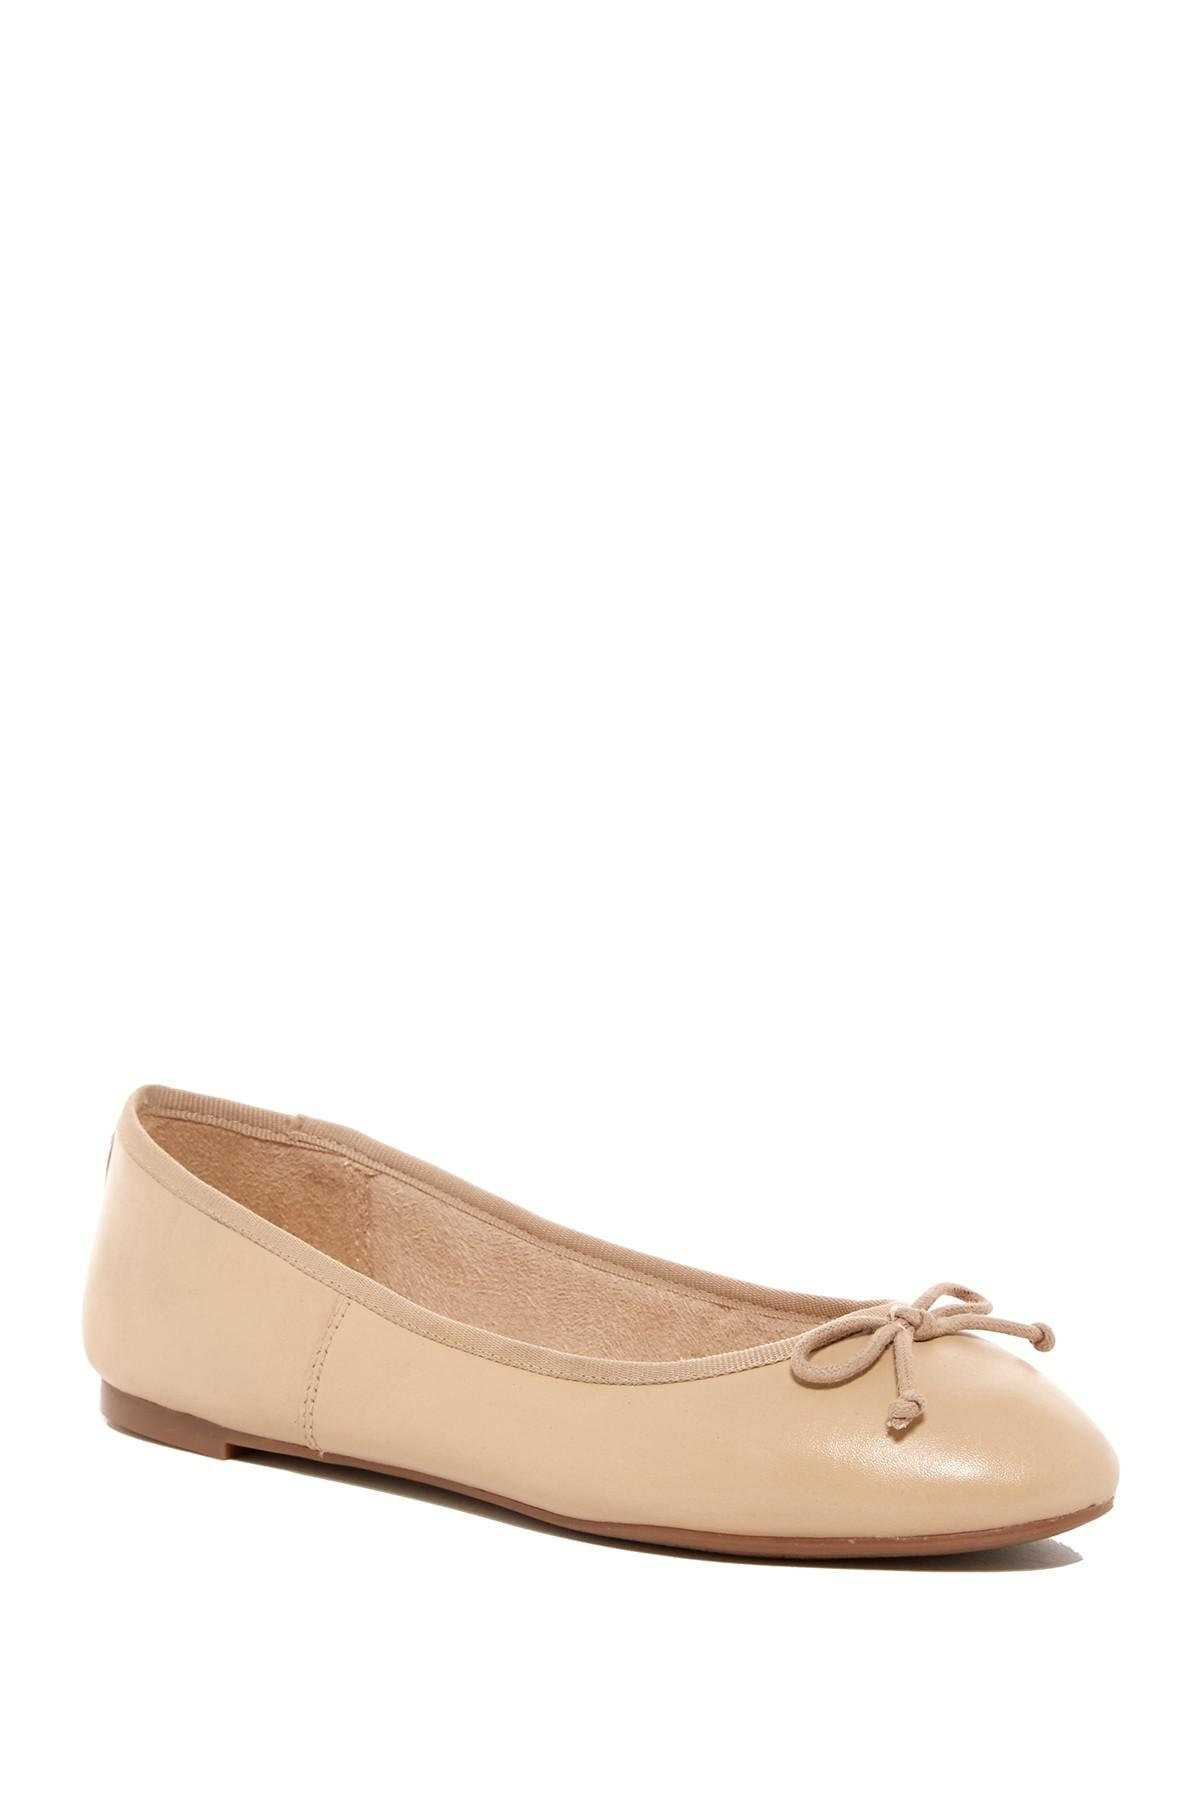 f85724139 Lyst - Sam Edelman Carrie Flat in Natural